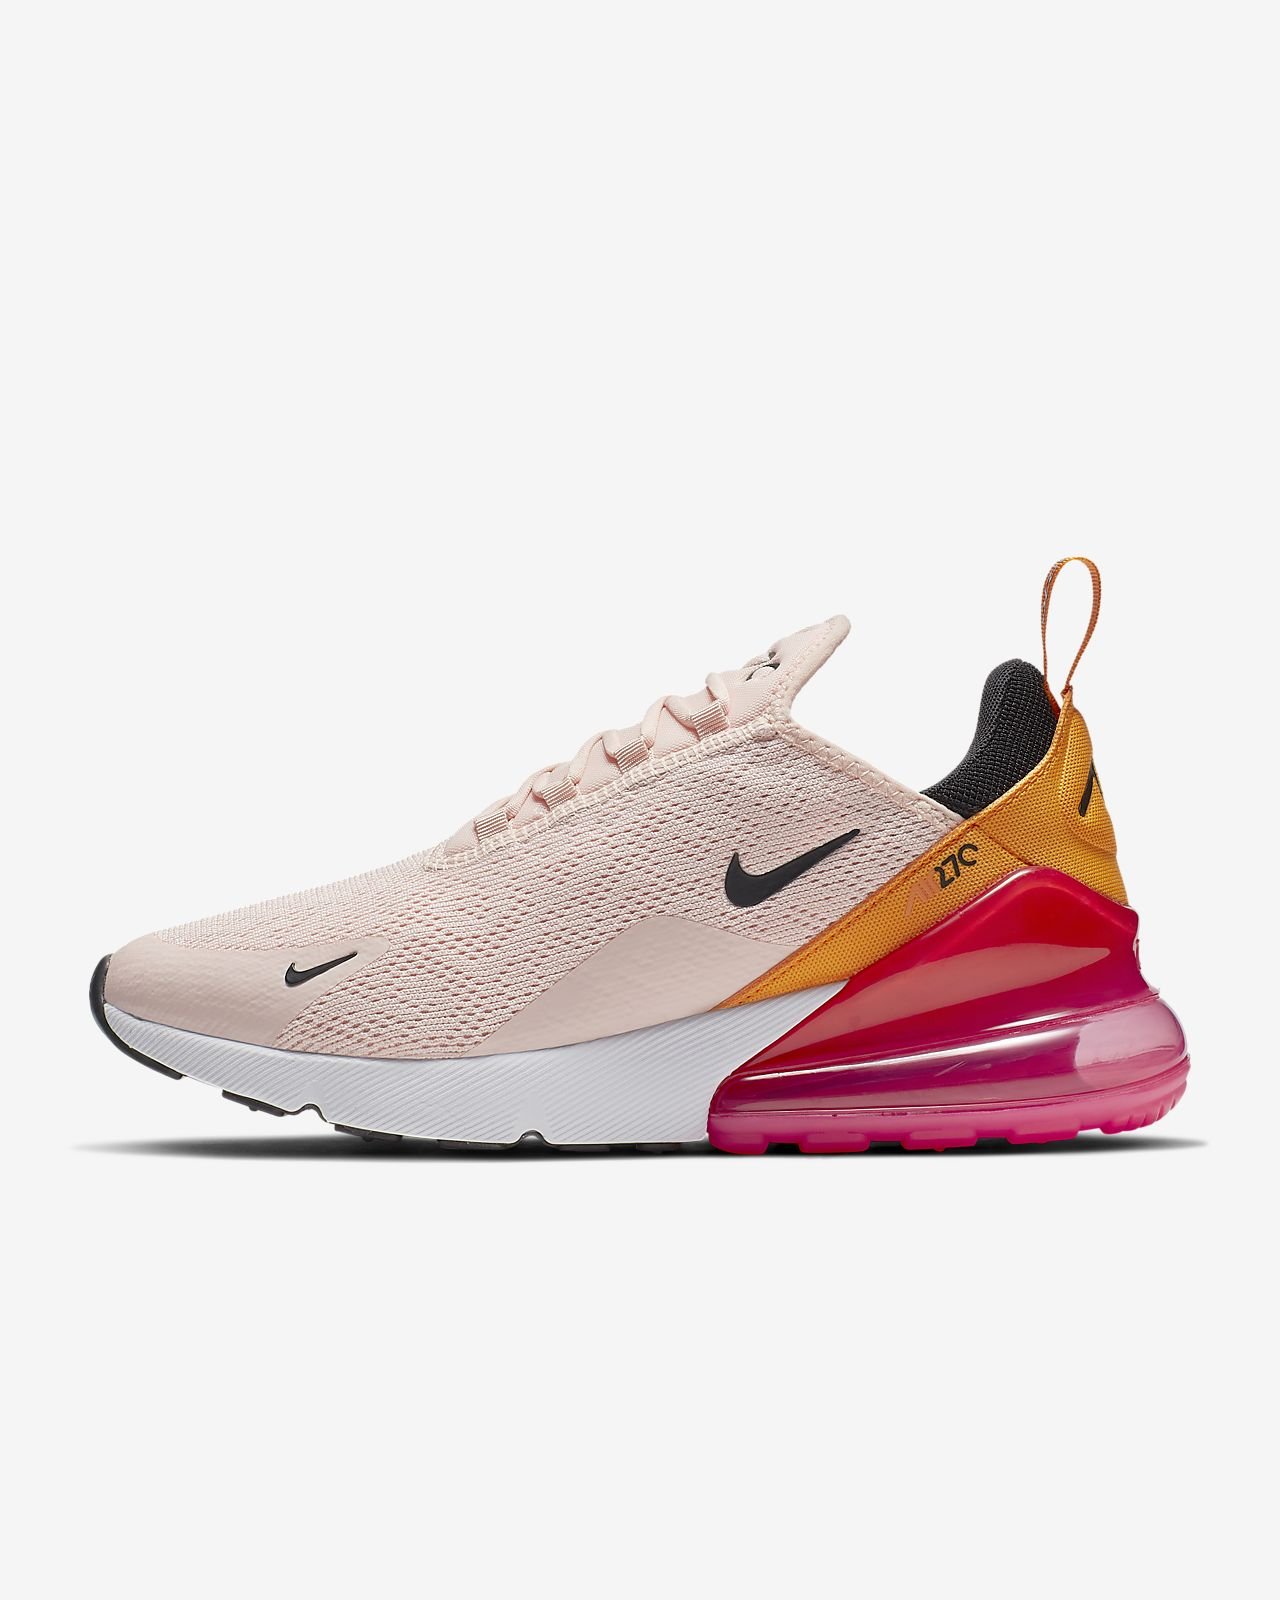 4847885e9230 Nike Air Max 270 Women s Shoe. Nike.com ZA